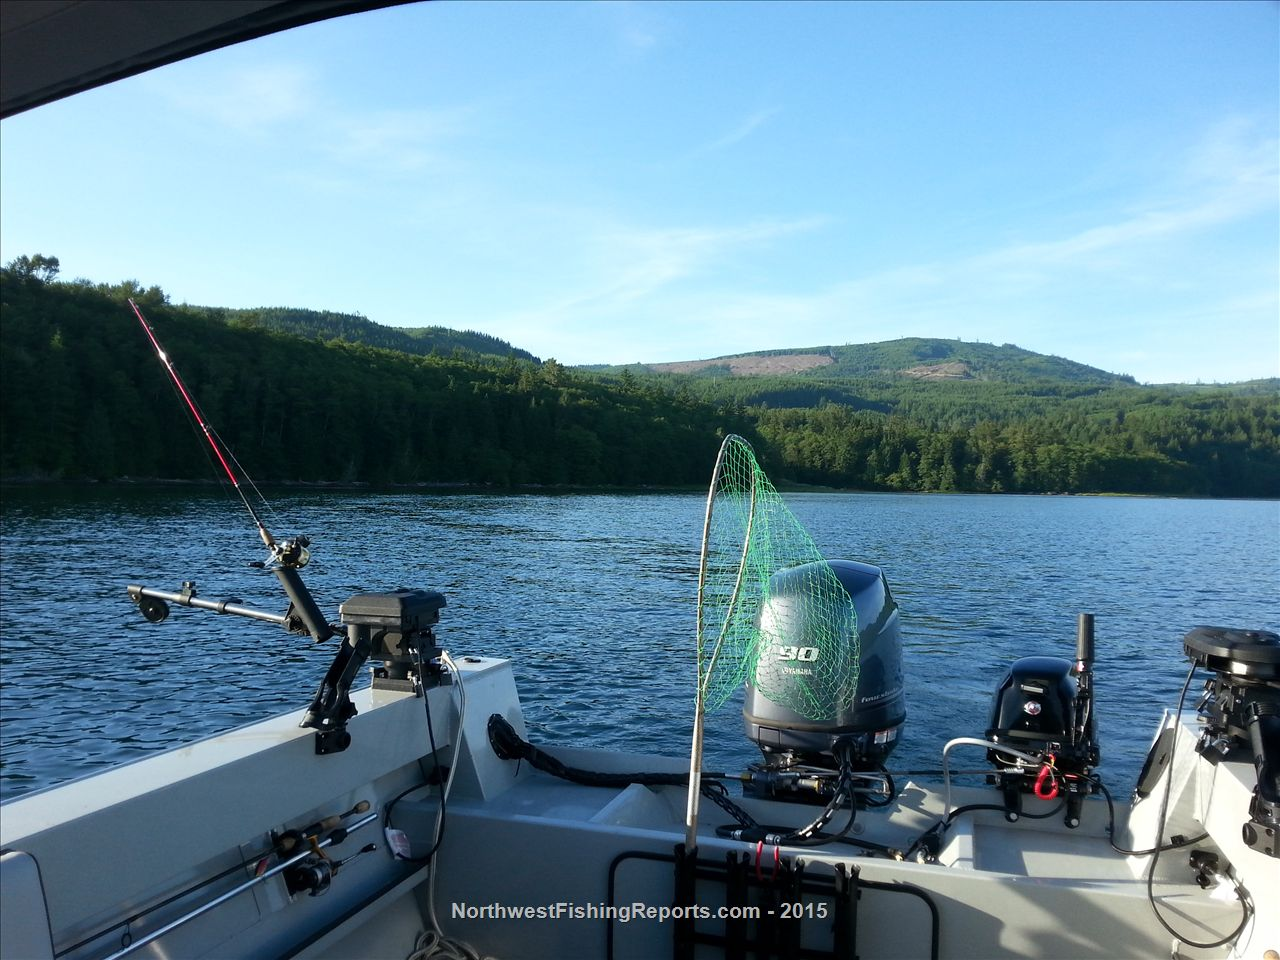 Riffe fishing report northwest fishing reports for Nw fishing report